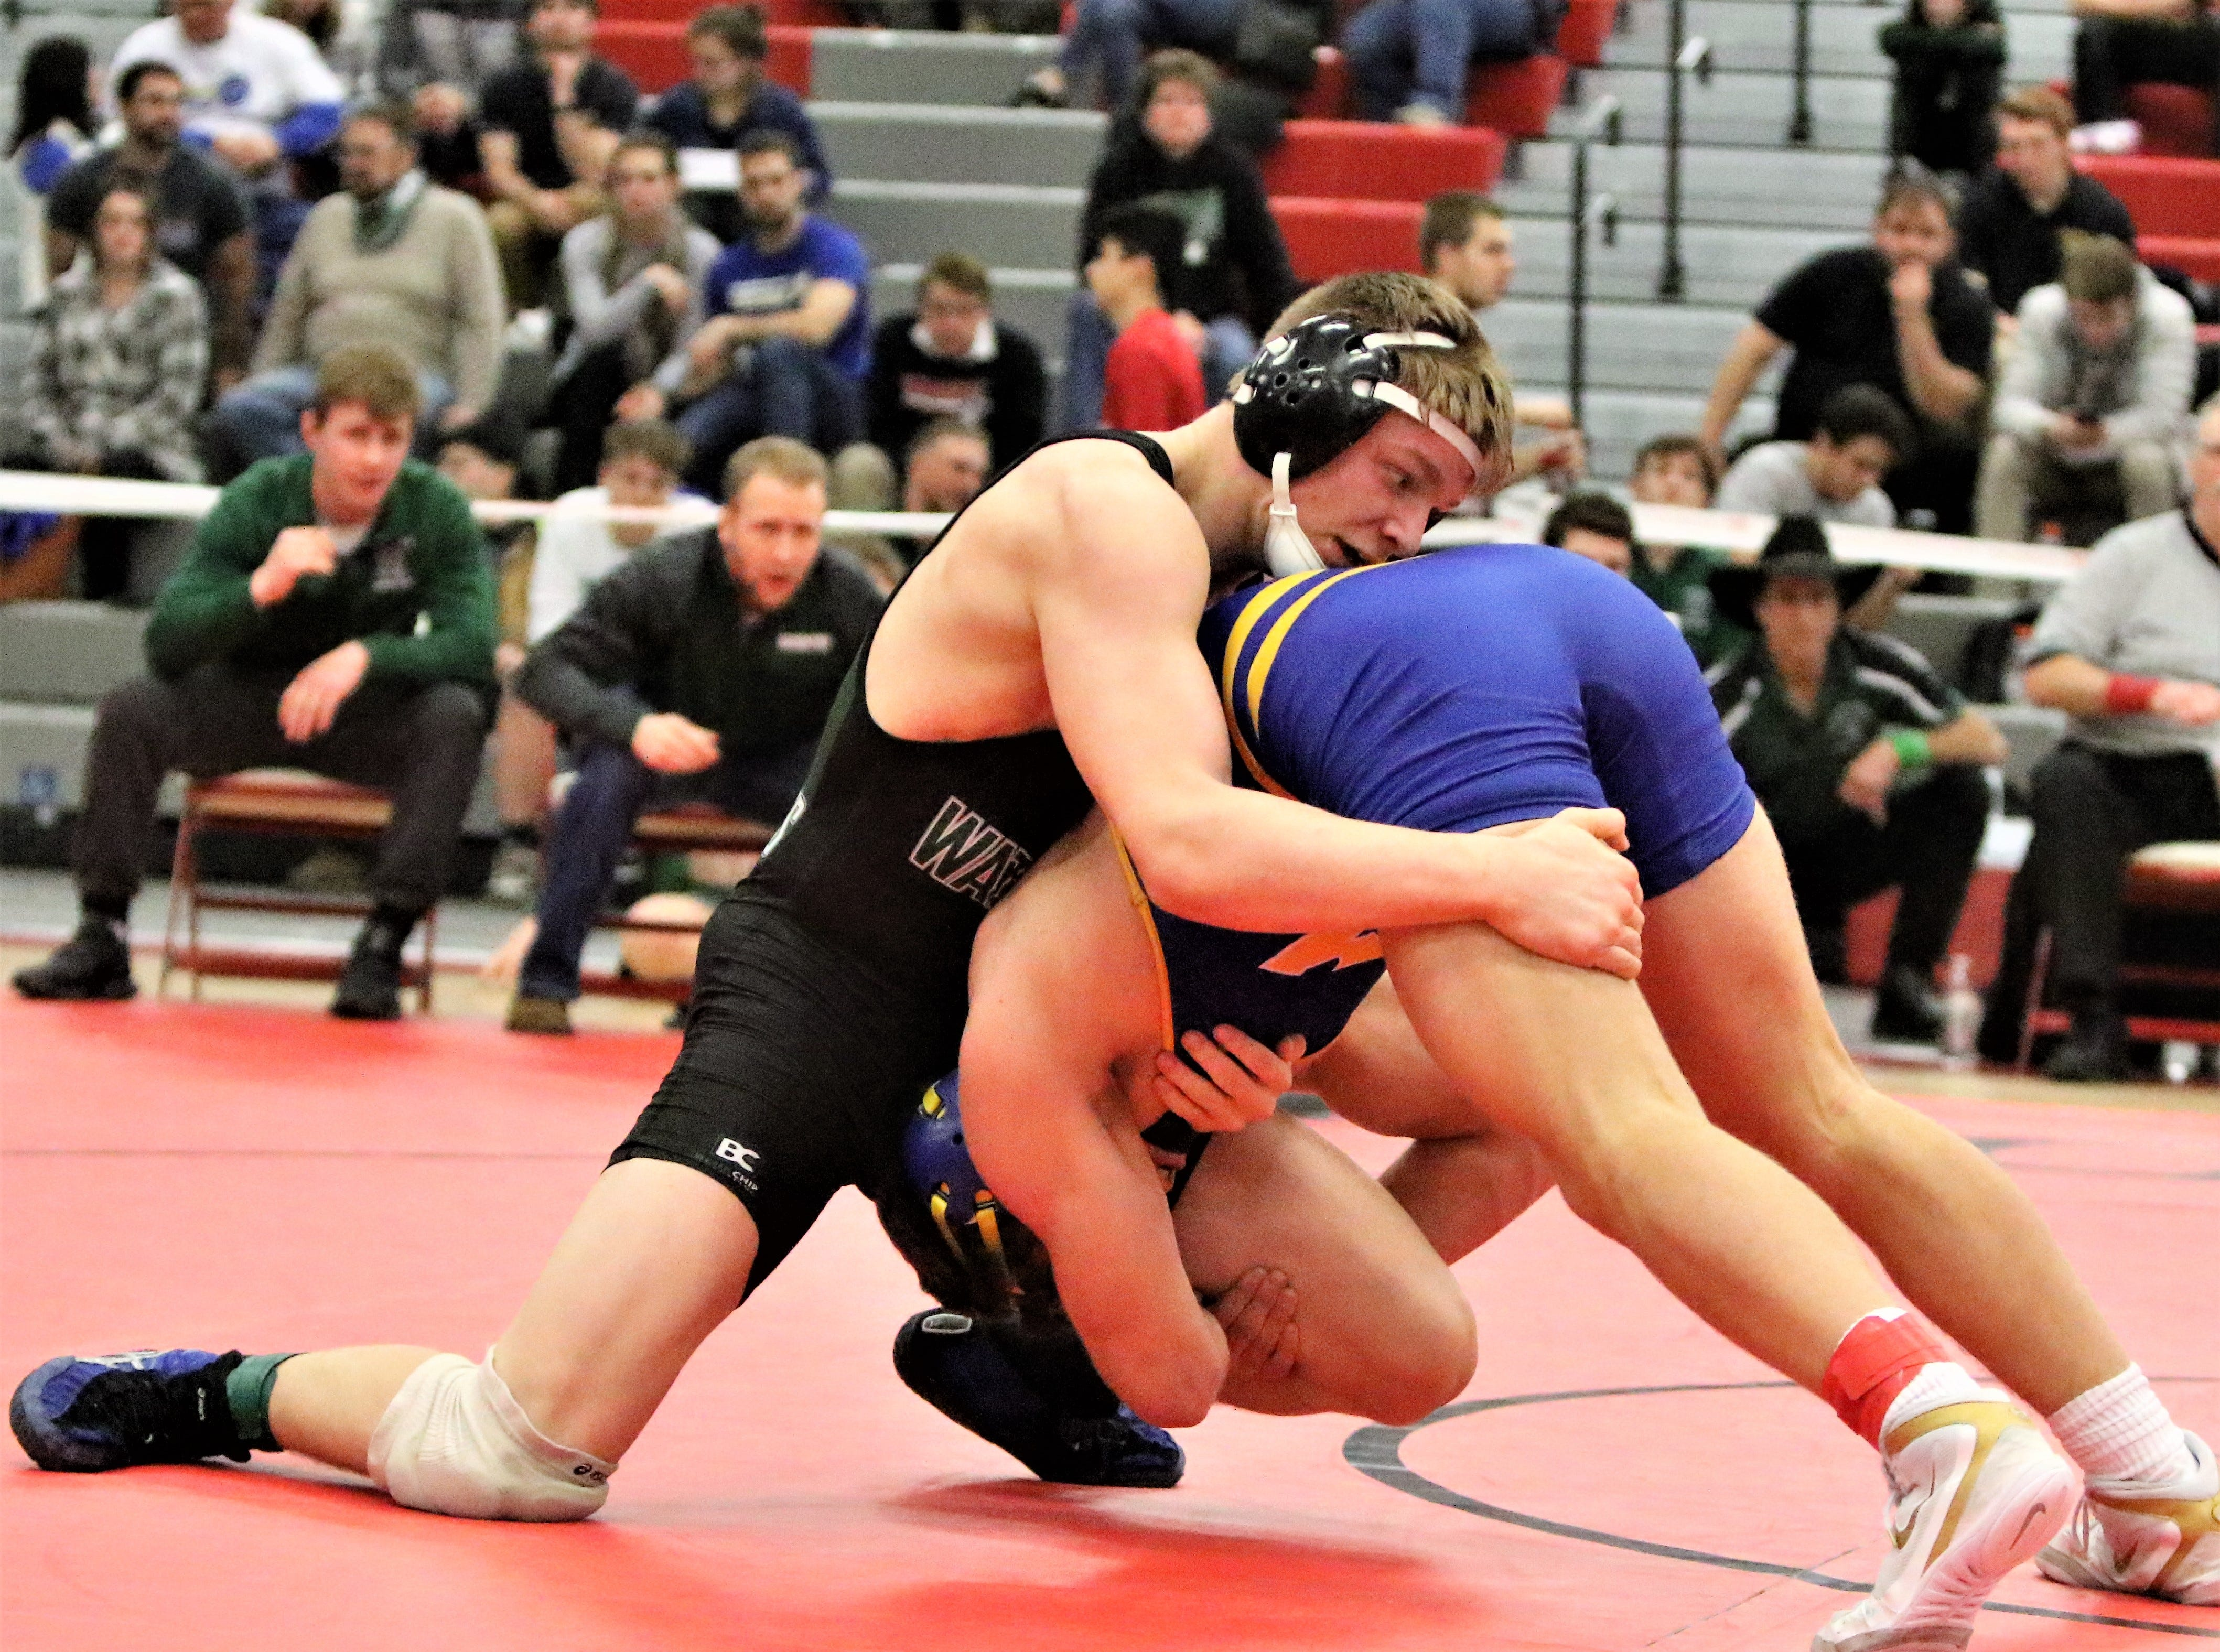 Waterford's Zach Kaminski (left) wrestles against Aaron Schmitz in the 170-pound sectional championship match at Racine Horlick on Feb. 16, 2019.